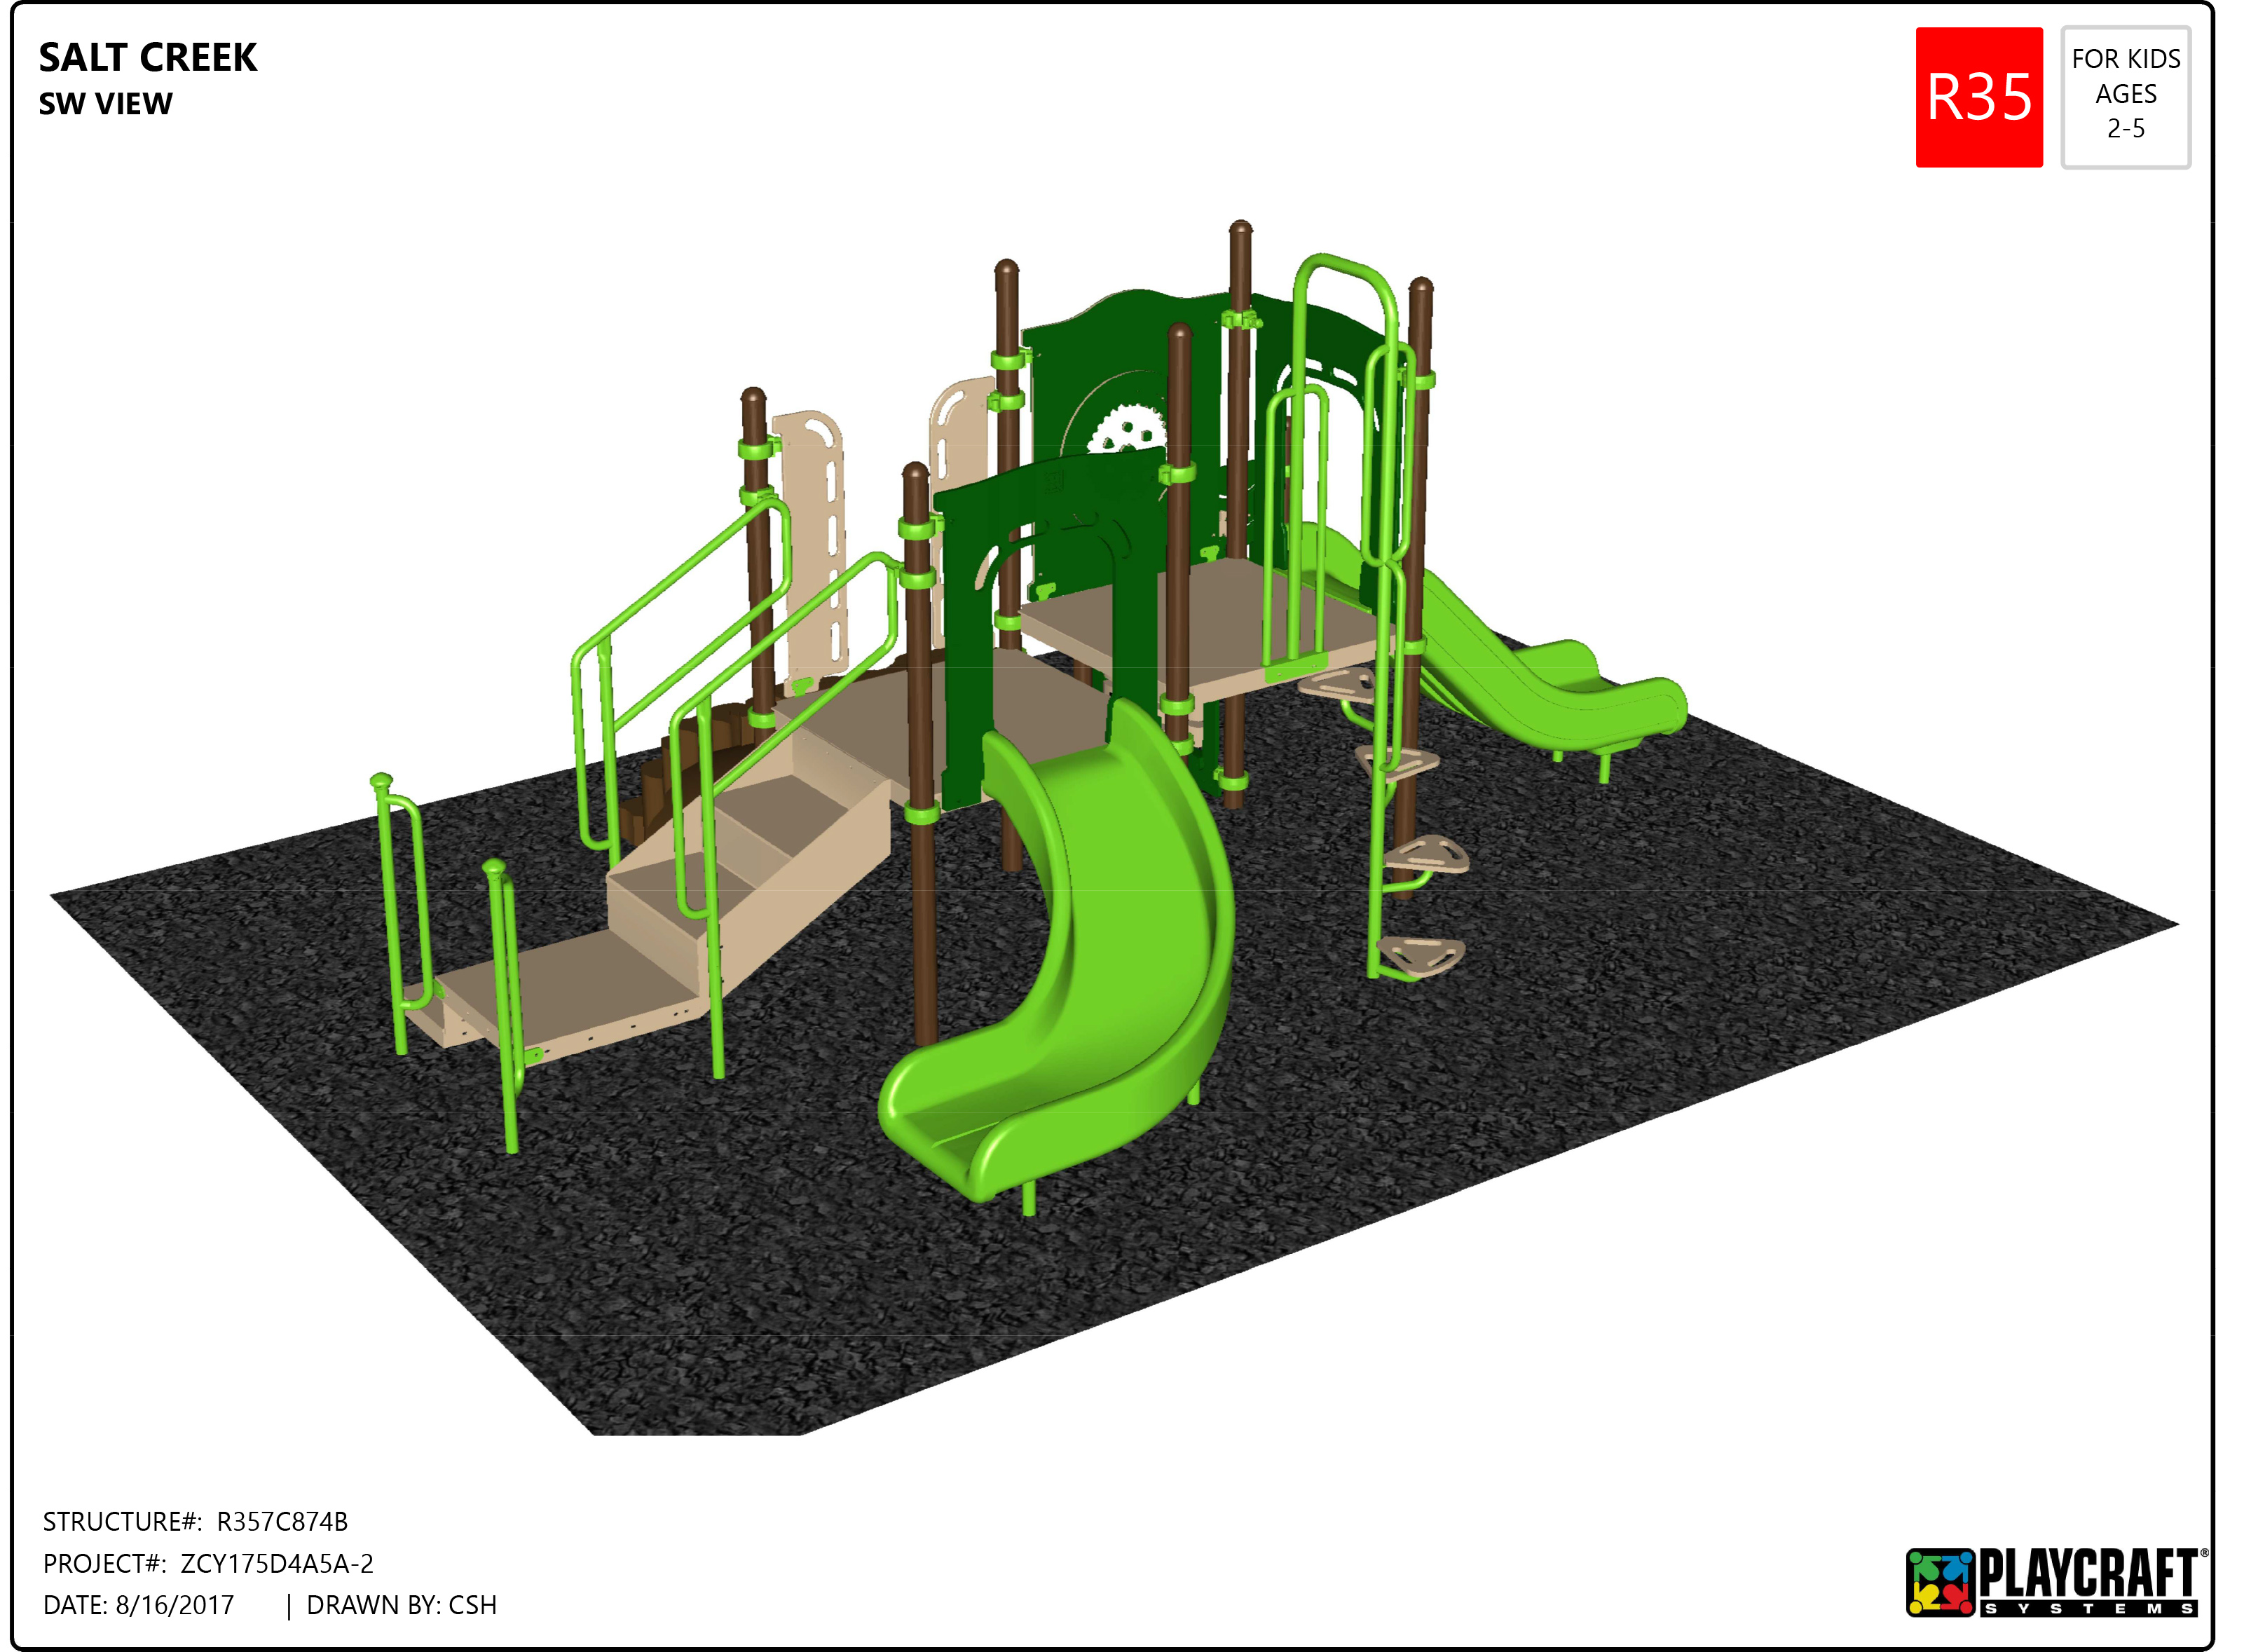 Salt Creek Playground Equipment Trying to Fund